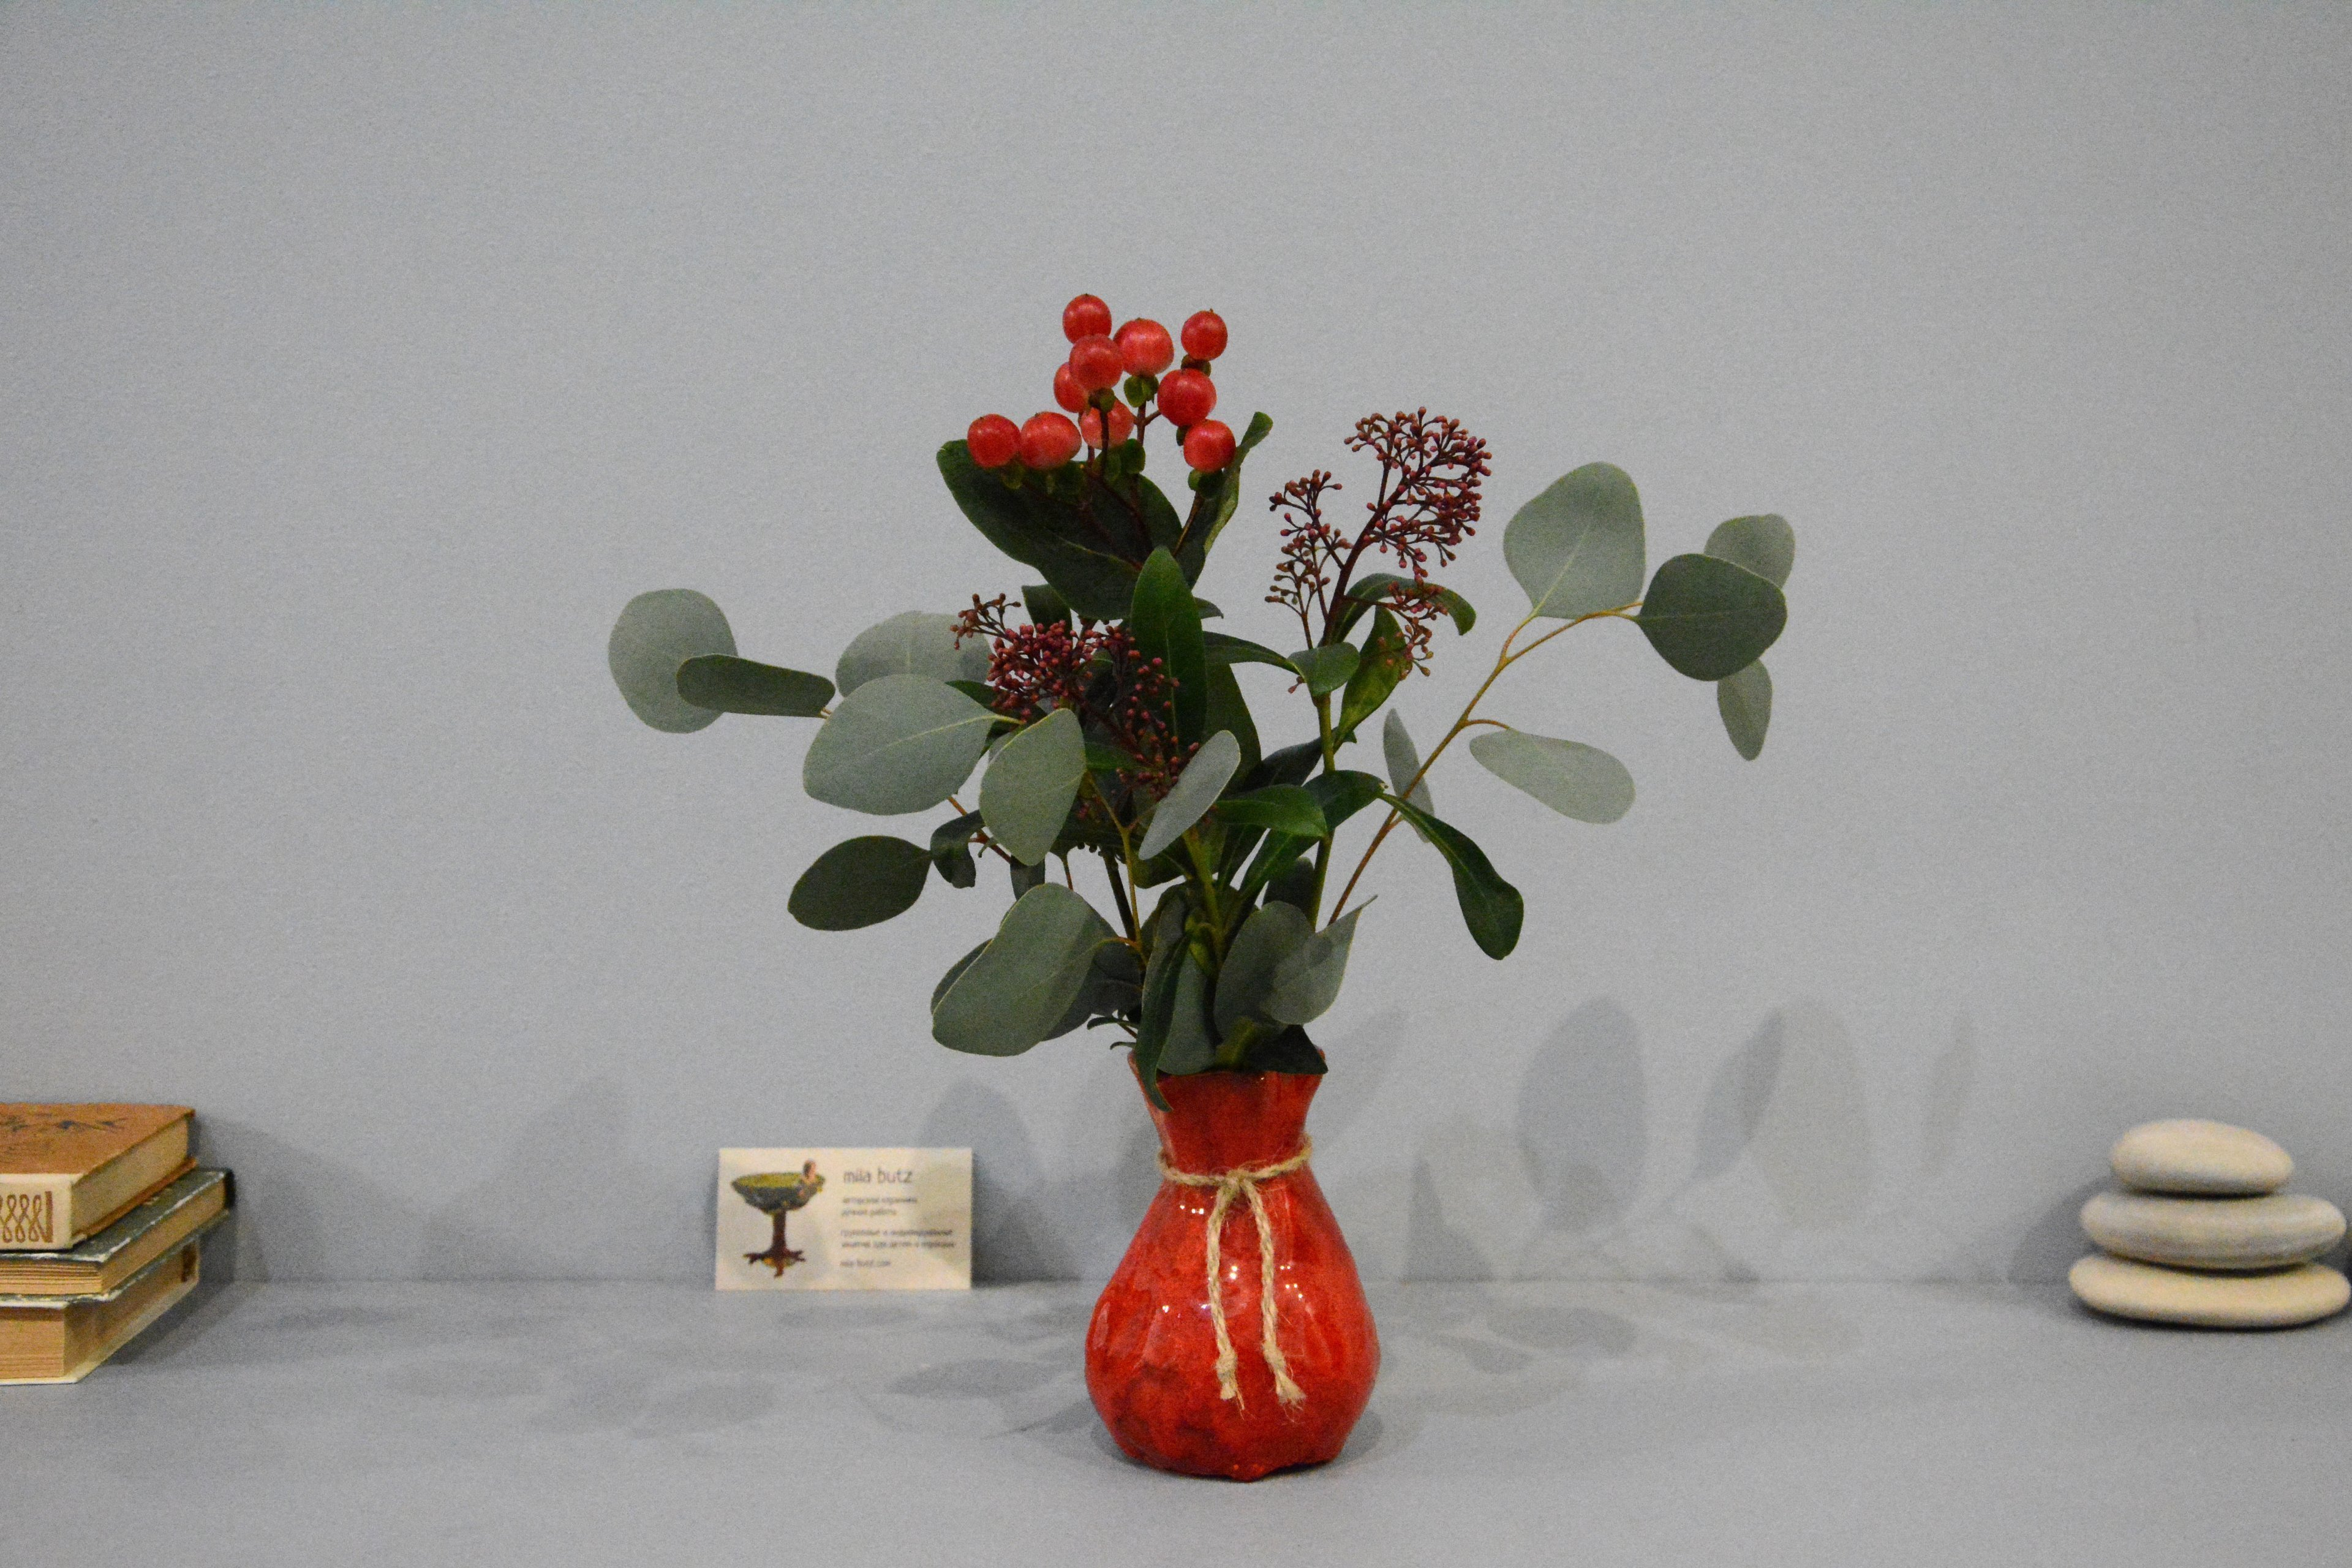 Small Vase or flowers «Red Bagful», height - 12 cm, color - red. Photo 1408.